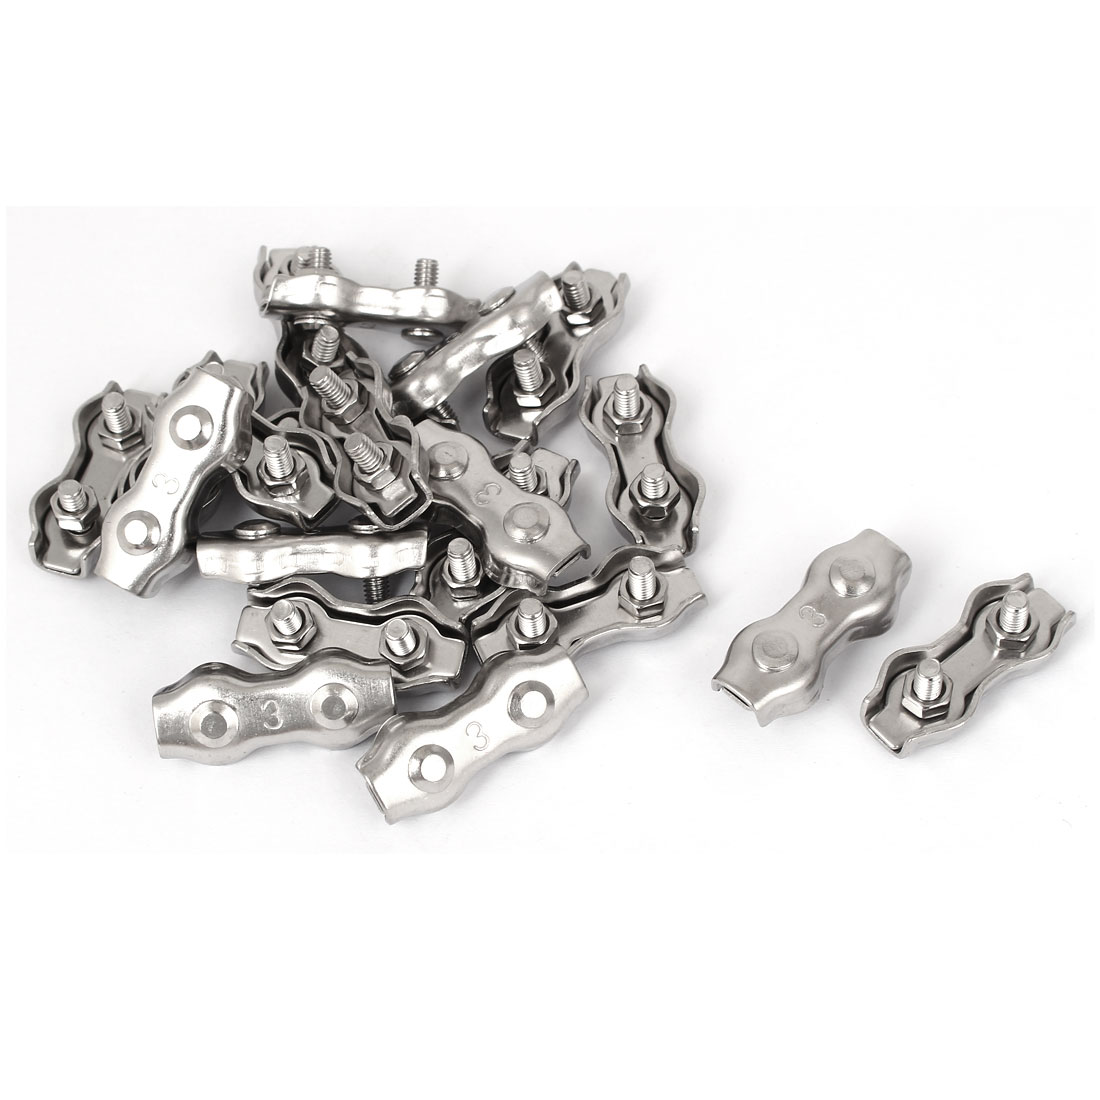 Stainless Steel Duplex 2-Post Clip Cable Clamp 20 Pcs for 3mm Wire Rope